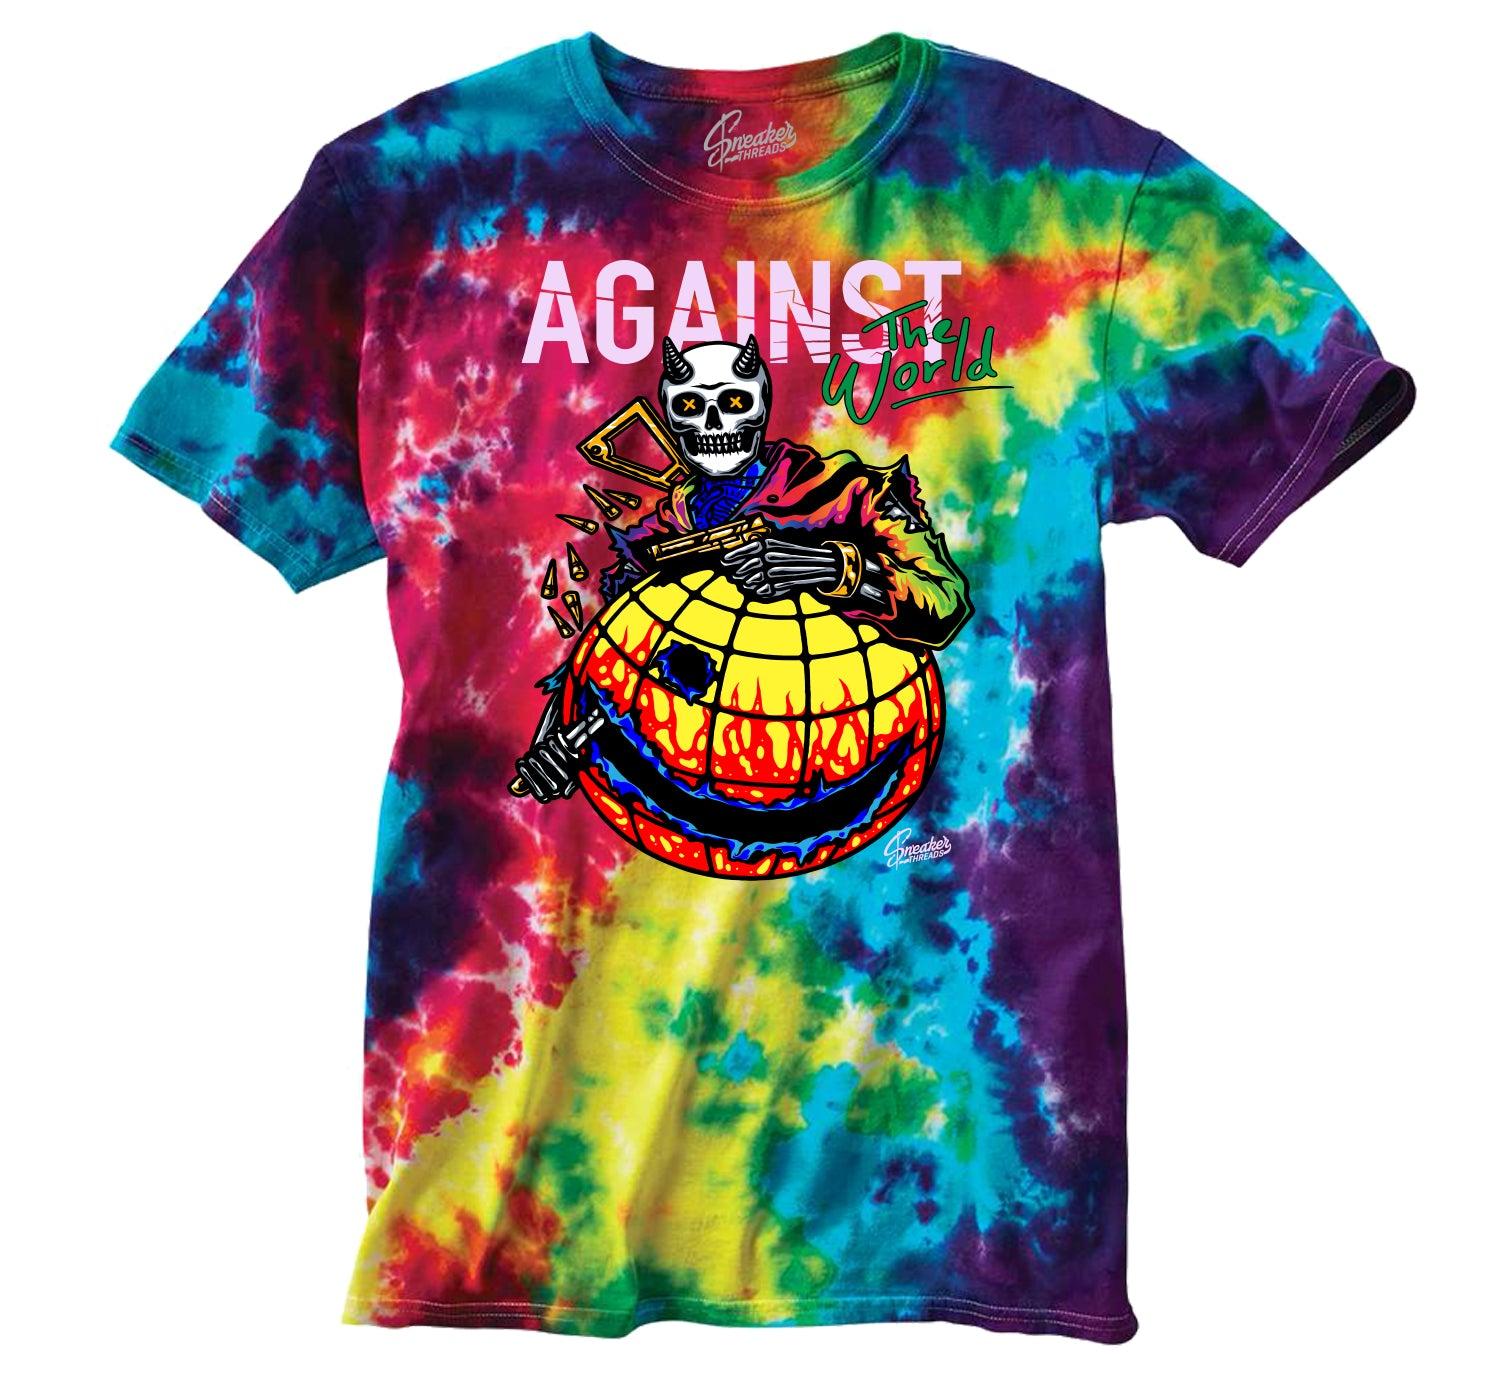 Jordan 1 Balvin Shirt -  Against The World - Tie Dye